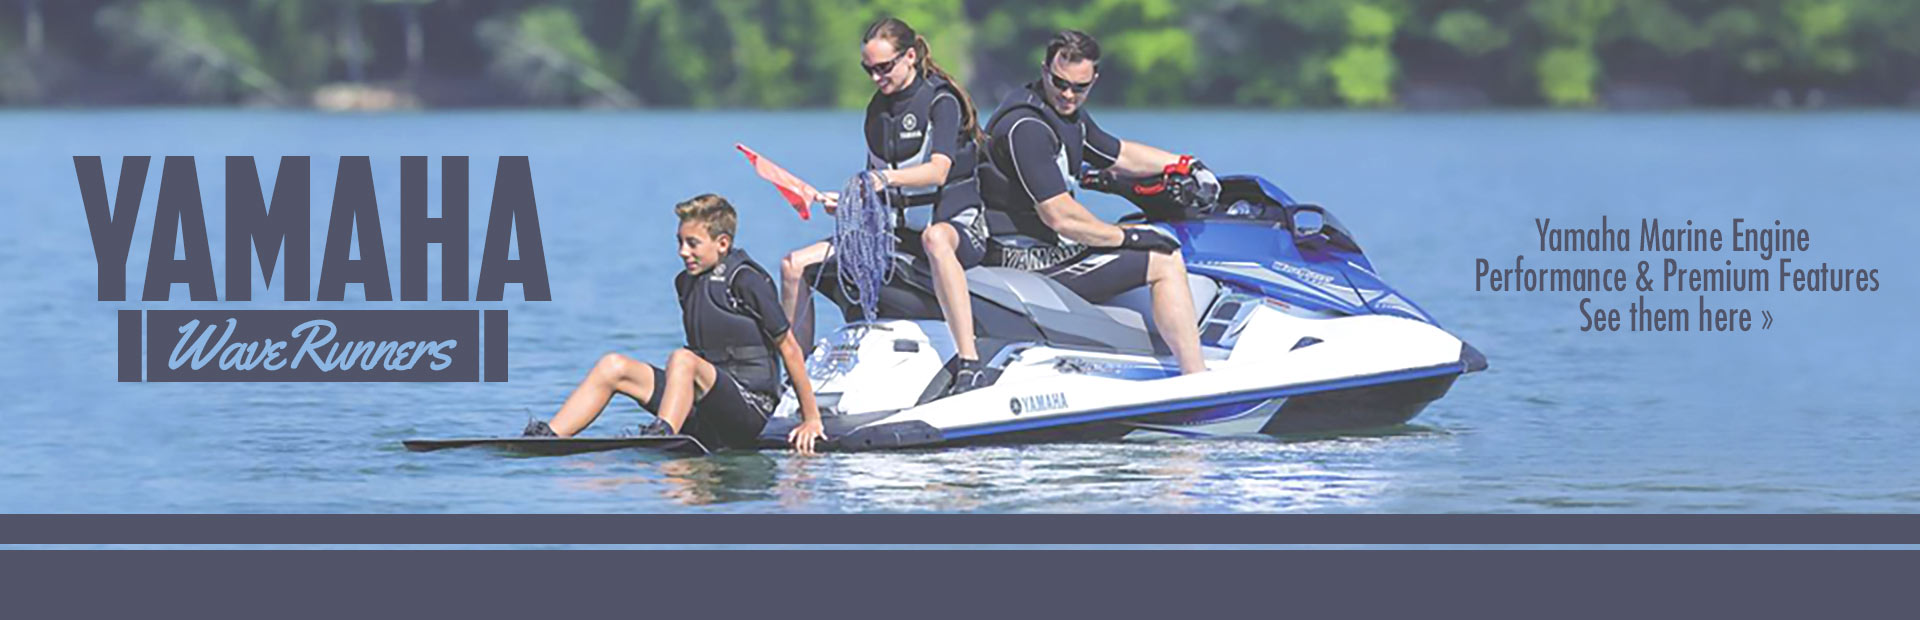 Yamaha WaveRunners: Click here to view the models.